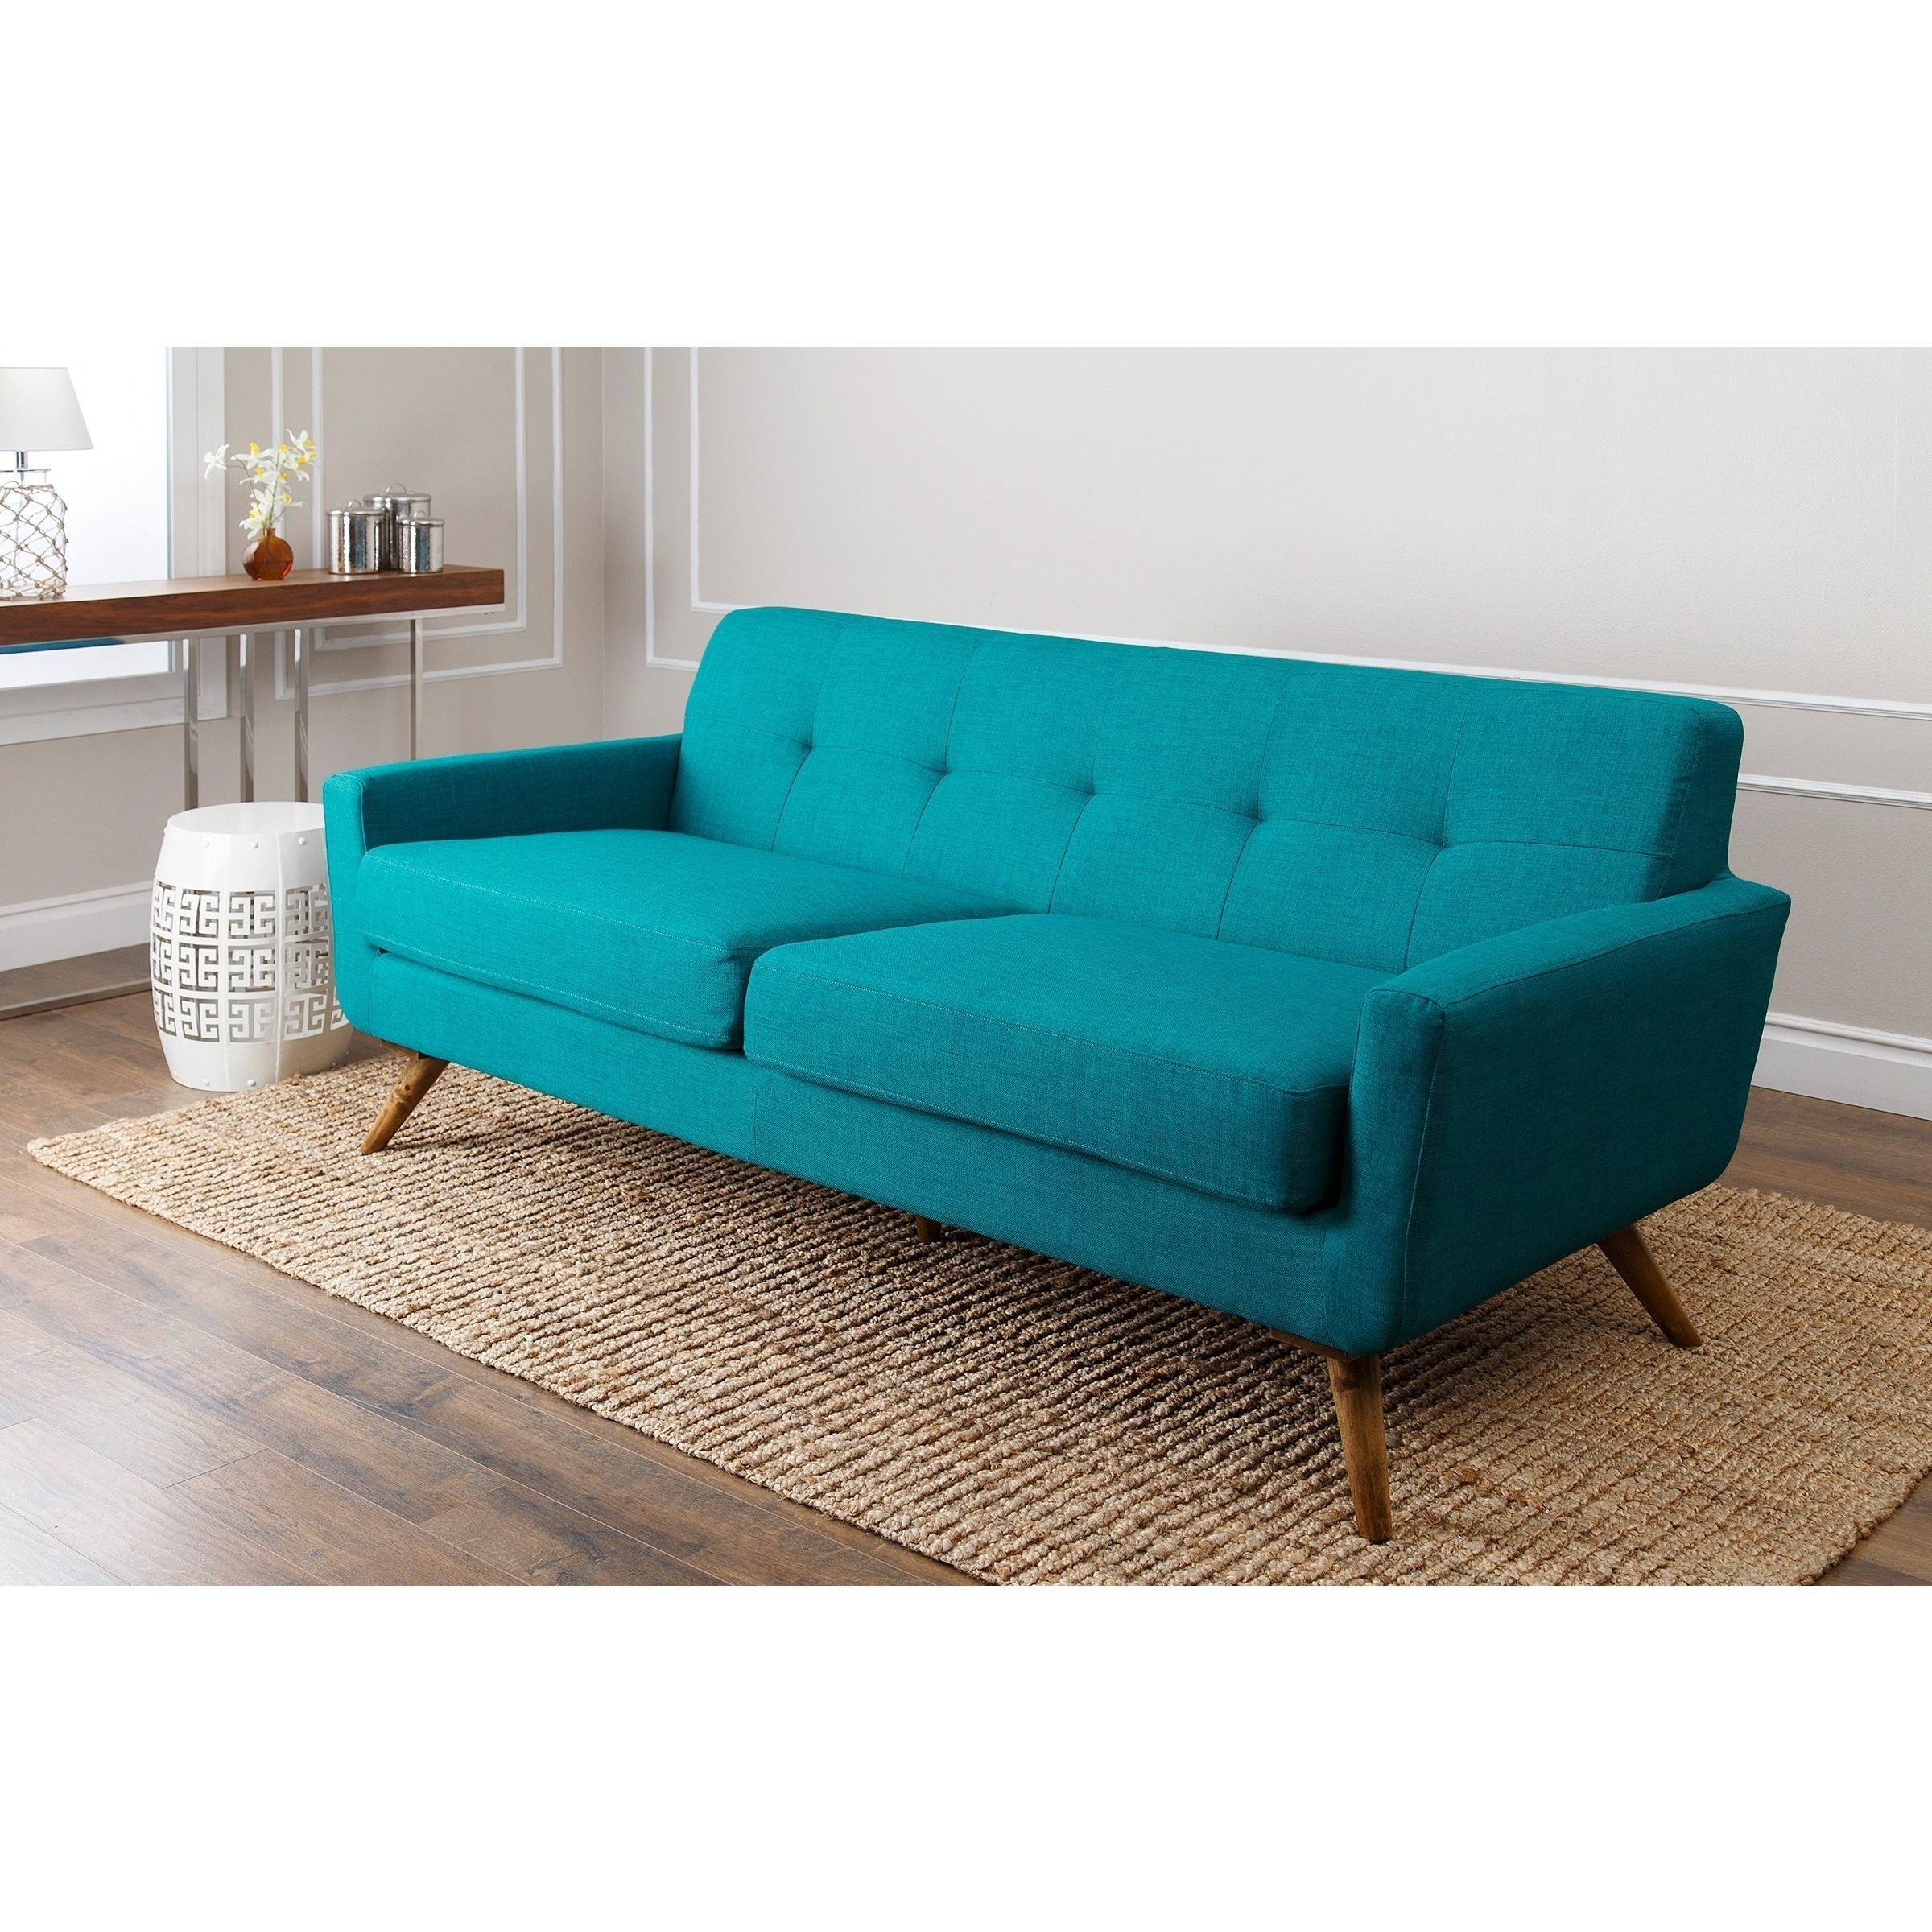 Elegant Popular Update Your Home With Modern Style Thanks To This Petrol  Blue Sofa Pertaining To Turquoise With Couch Petrol